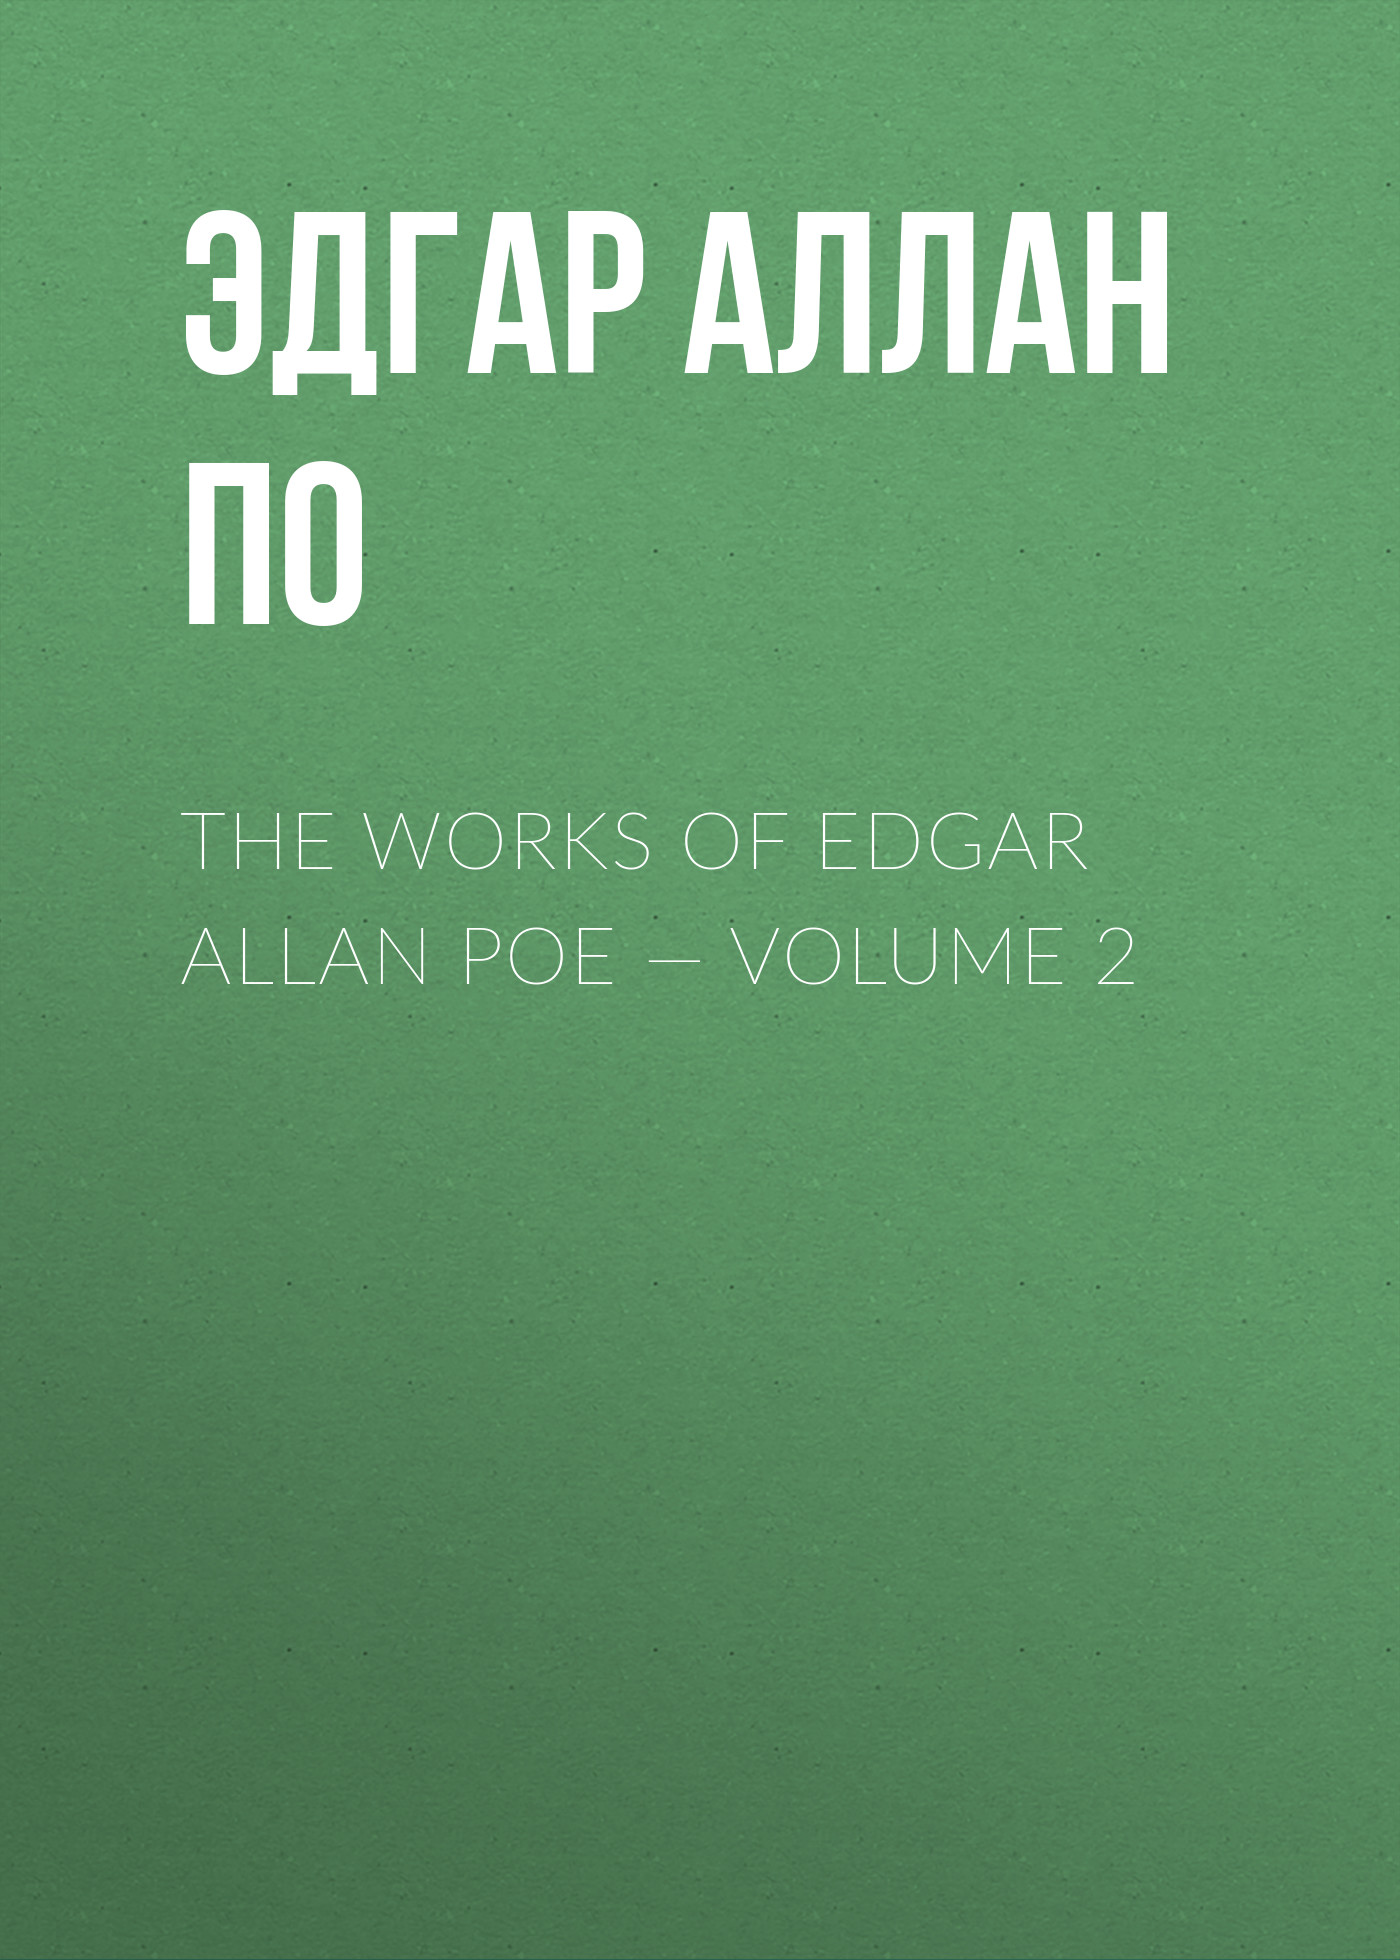 Эдгар Аллан По The Works of Edgar Allan Poe — Volume 2 edgar allan poe the best of edgar allan poe volume 4